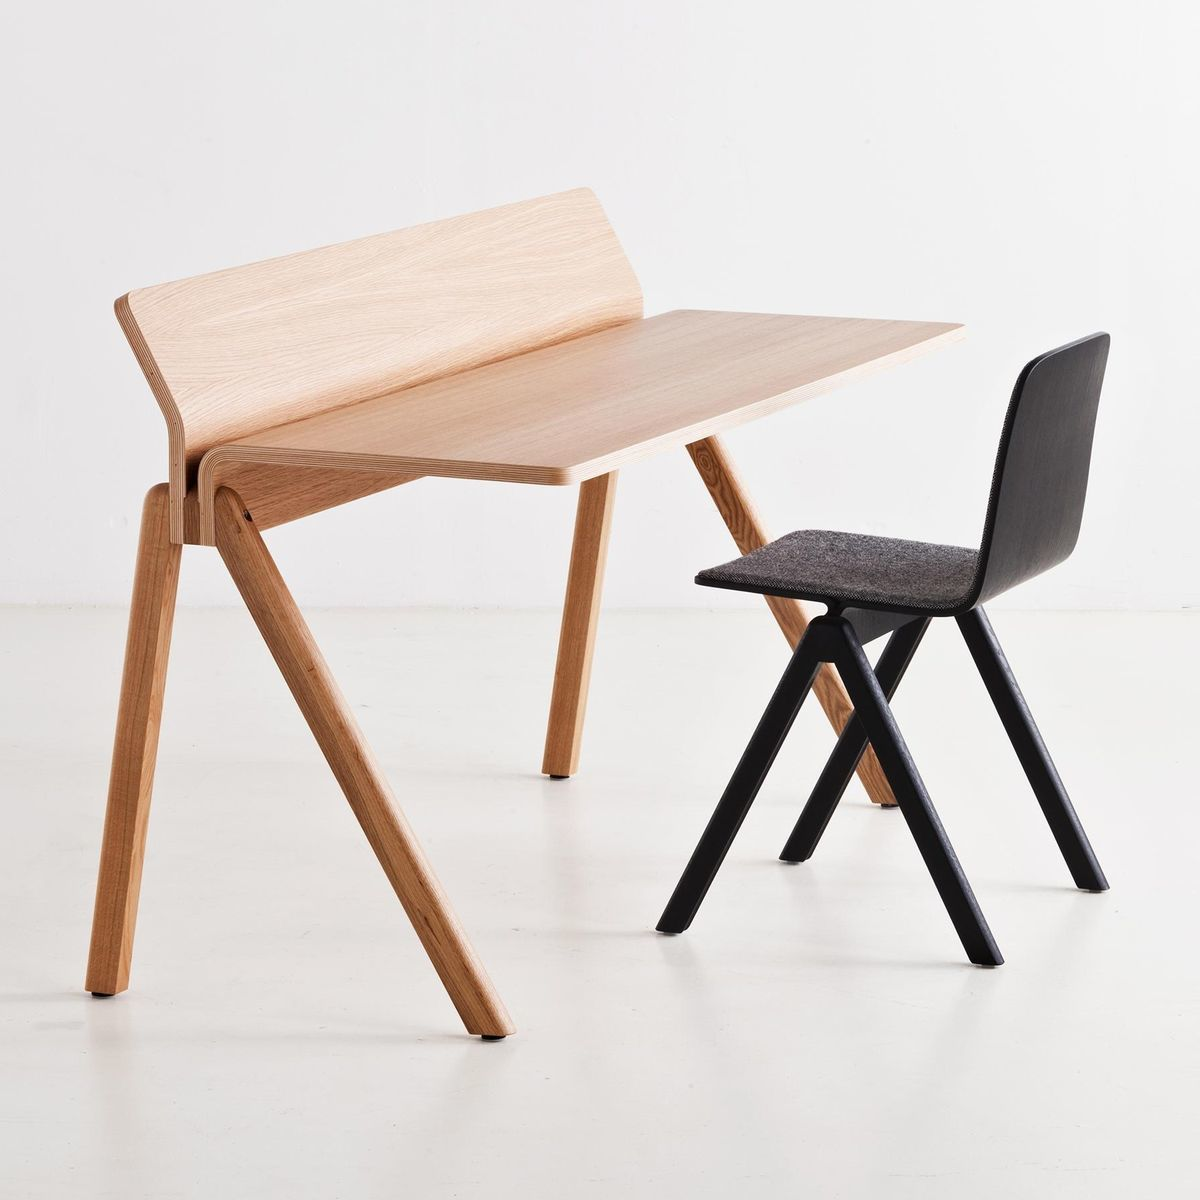 Copenhague cph190 table de travail bureau hay - Table de travail bureau ...